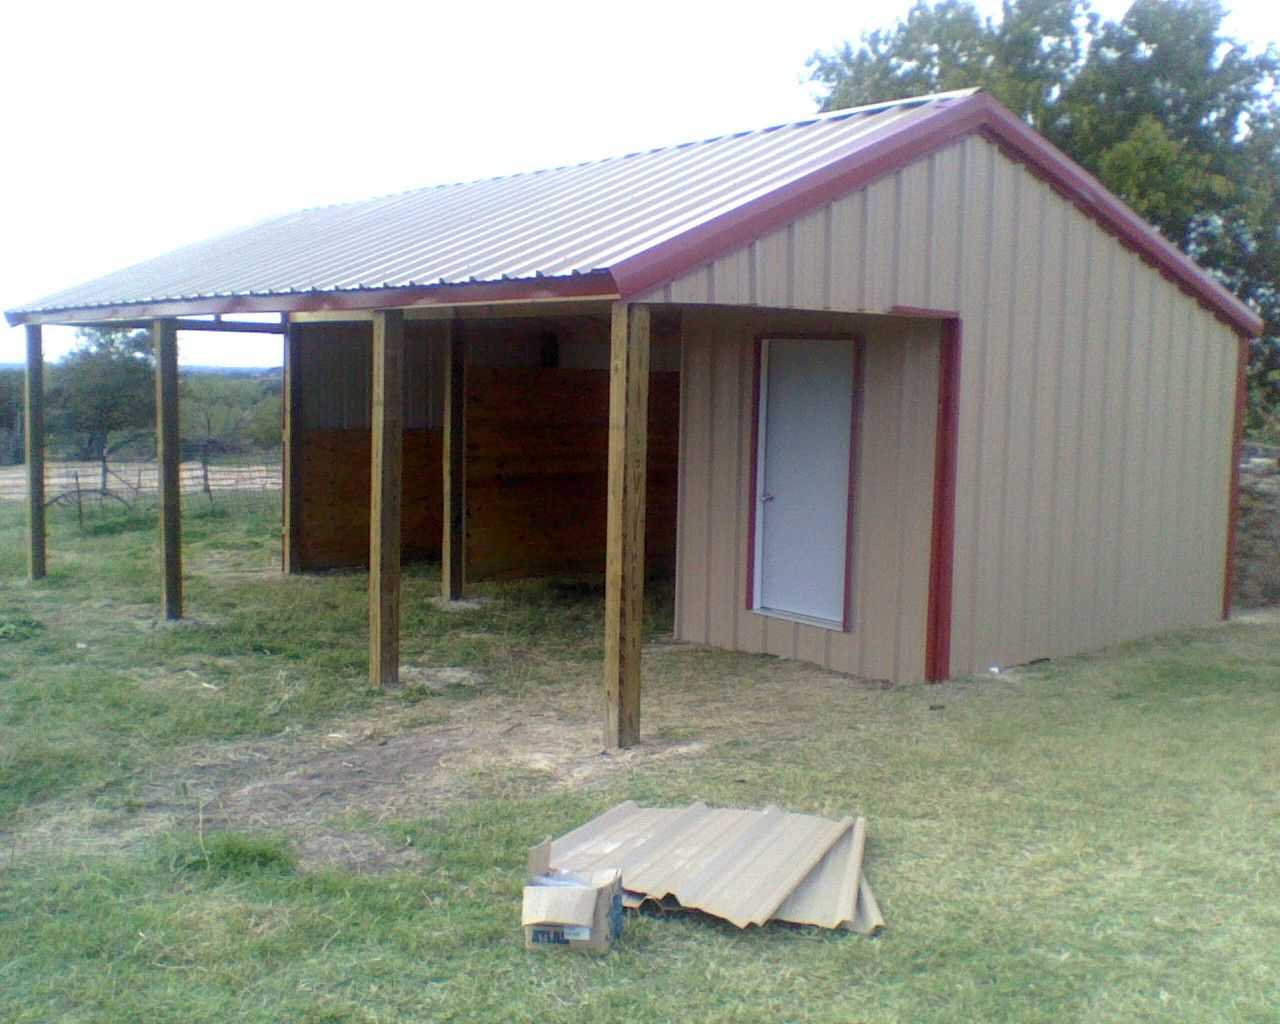 Small 2 stall horse barn small barns horse related for Small barn house kits